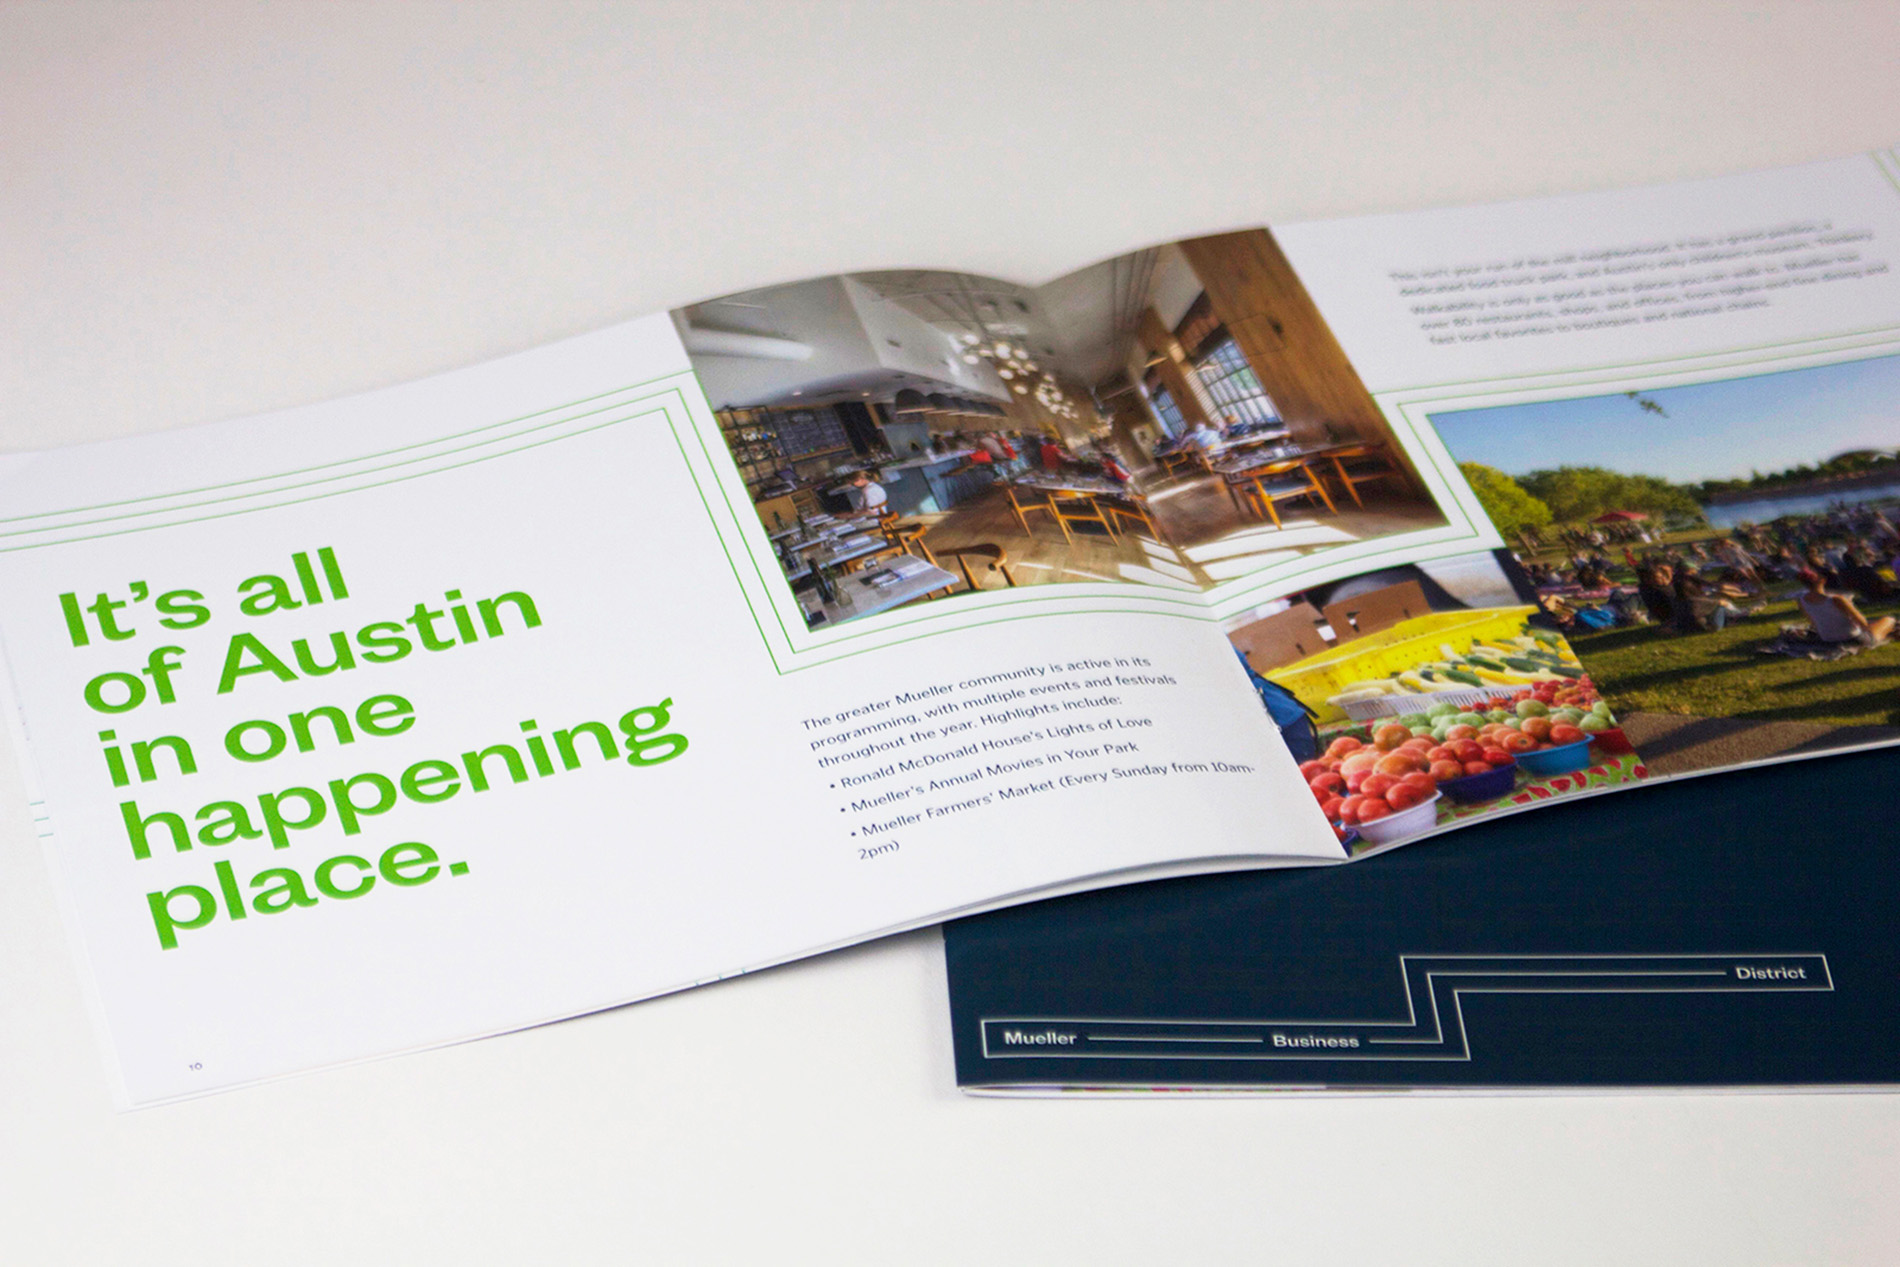 """An open brochure with the headline """"It's all of Austin in one happening place."""""""